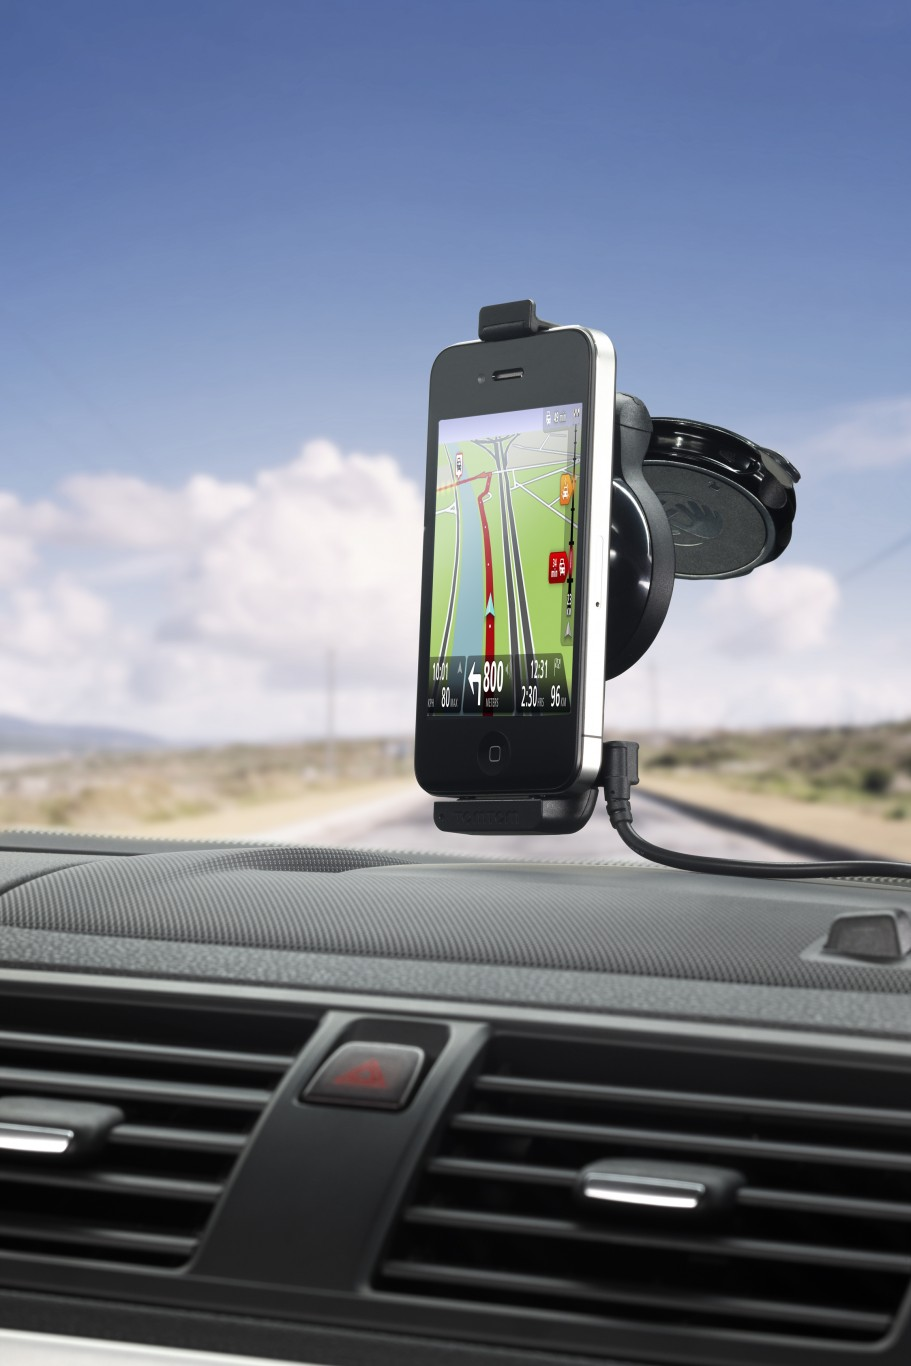 tomtom_154633_acc_tomtom-_iphone-carkit_a4